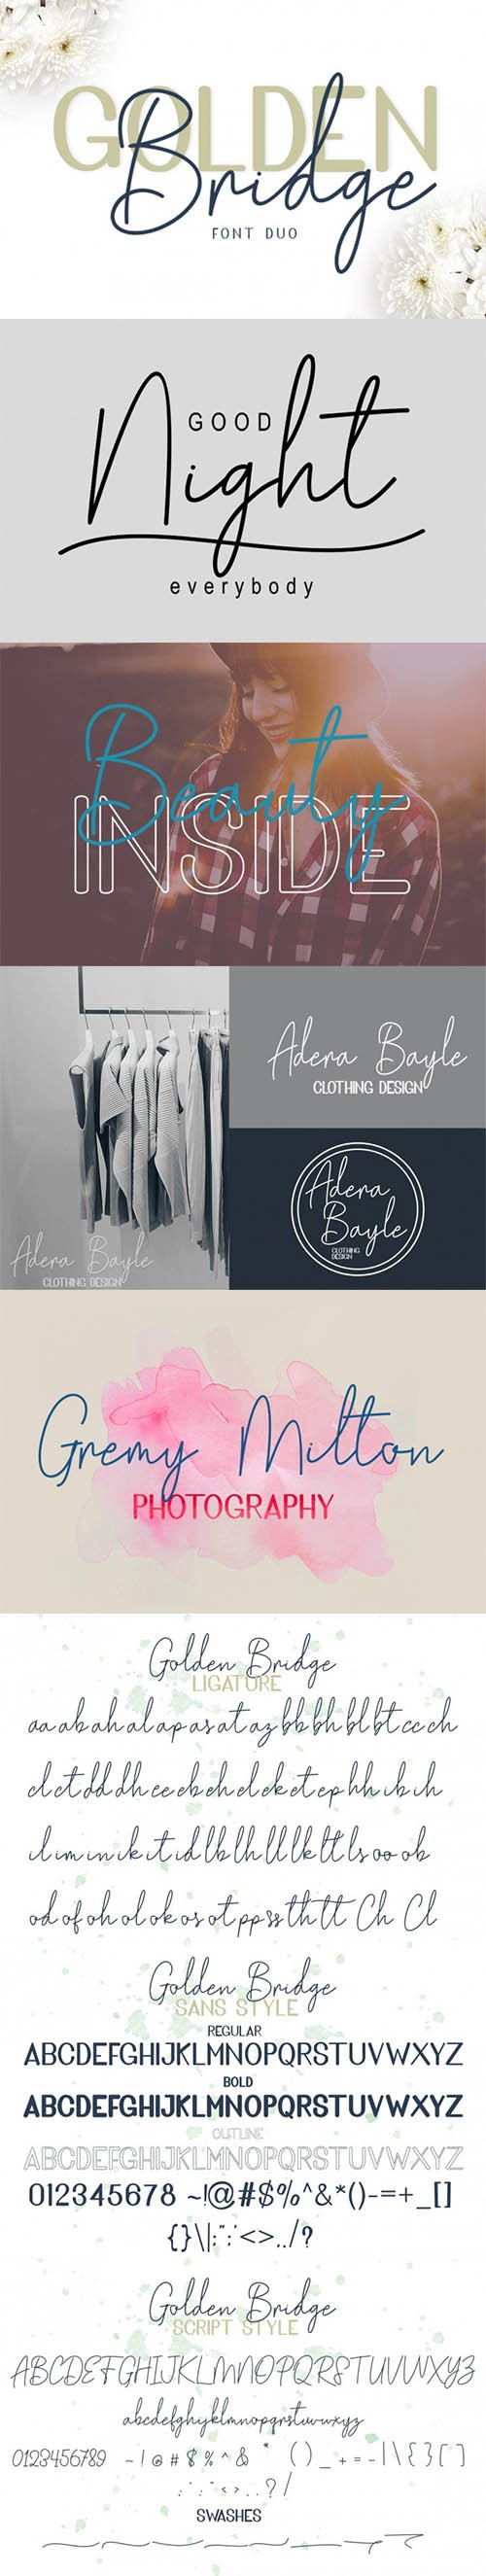 CreativeMarket - Golden Bridge Font Duo 2678294